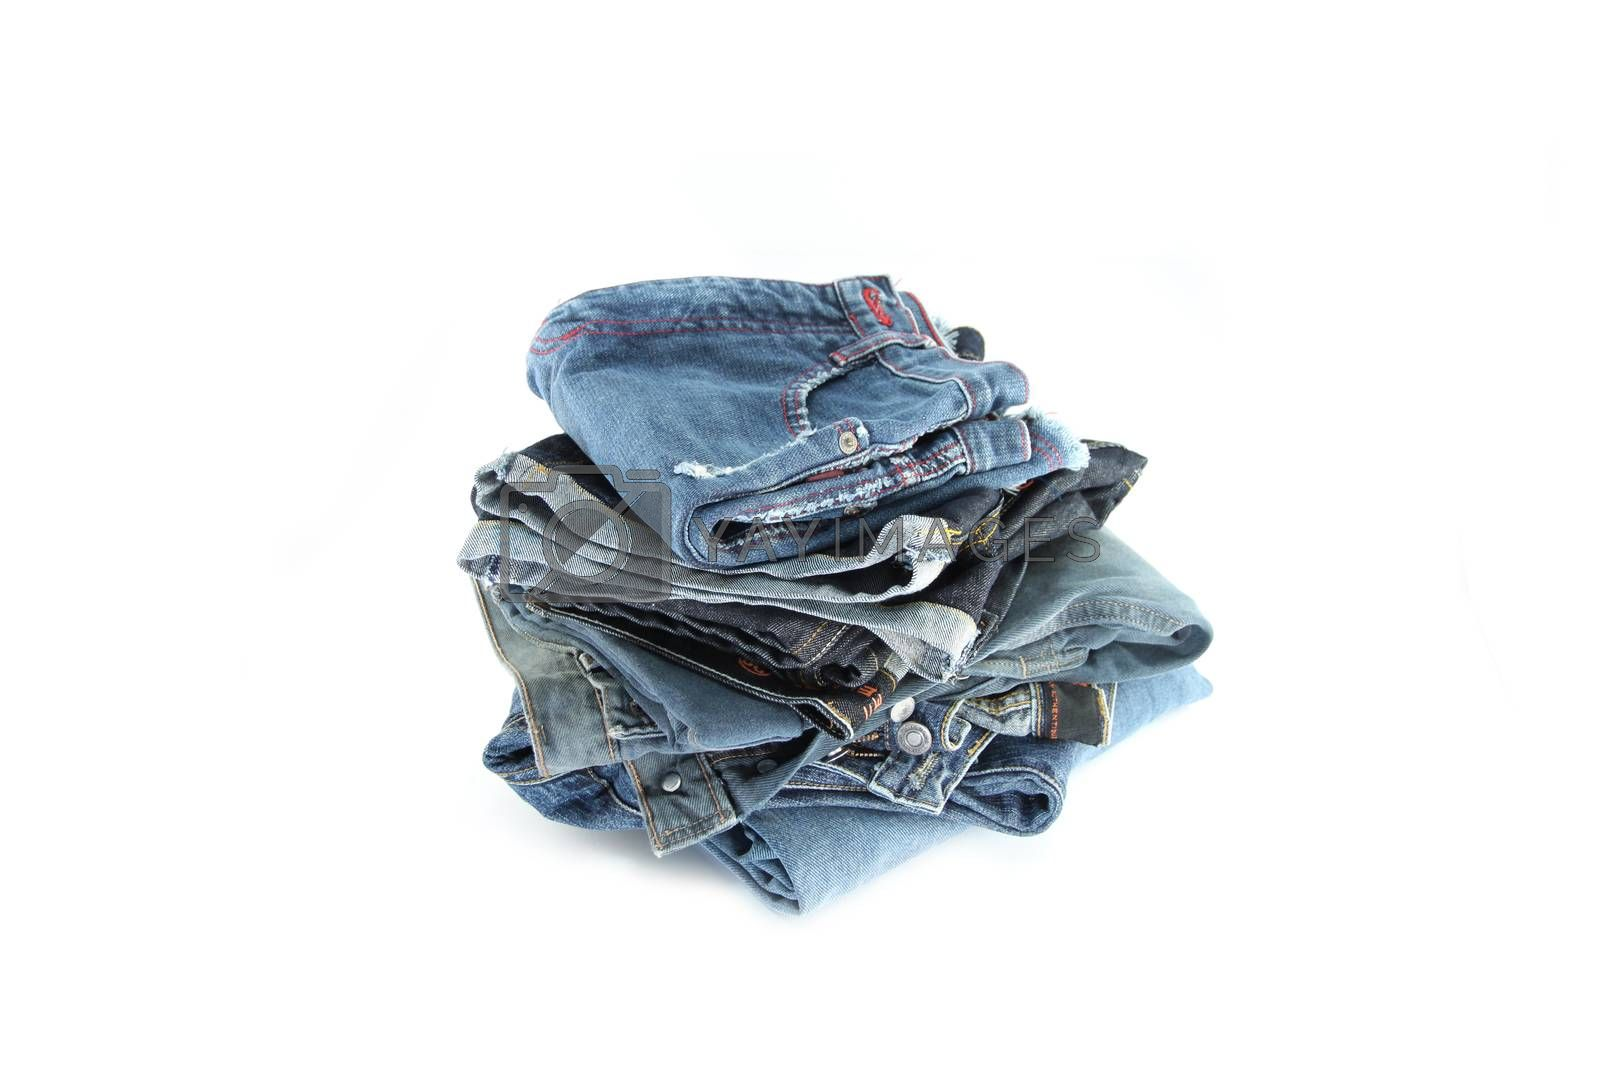 The blue Jeans Placing stacked on the white background.